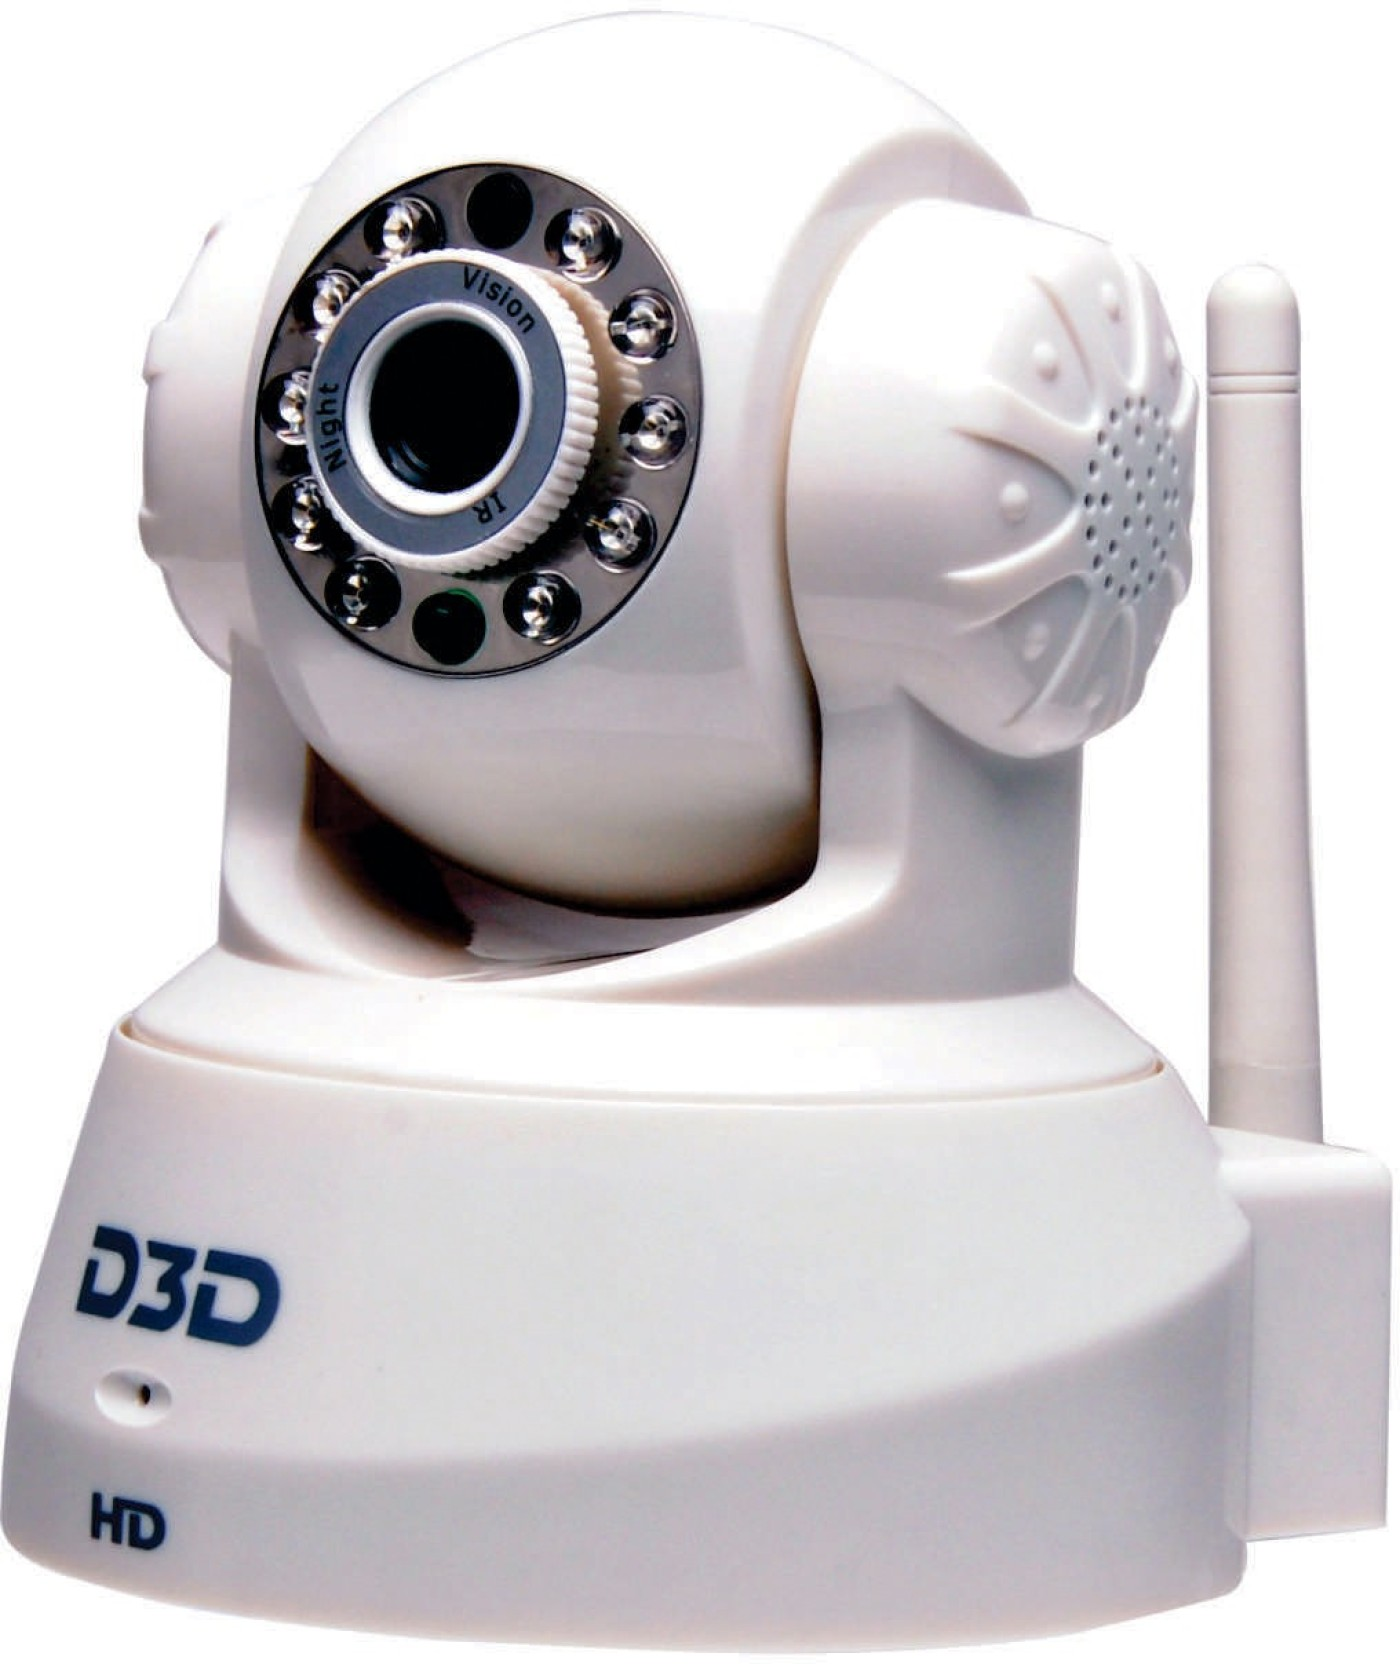 D3D Wireless Full HD IP Camera 360 Degree Panilt With 5X Zoom White Colour  Smart phone iOS/ Android Mobile App Home Security Camera